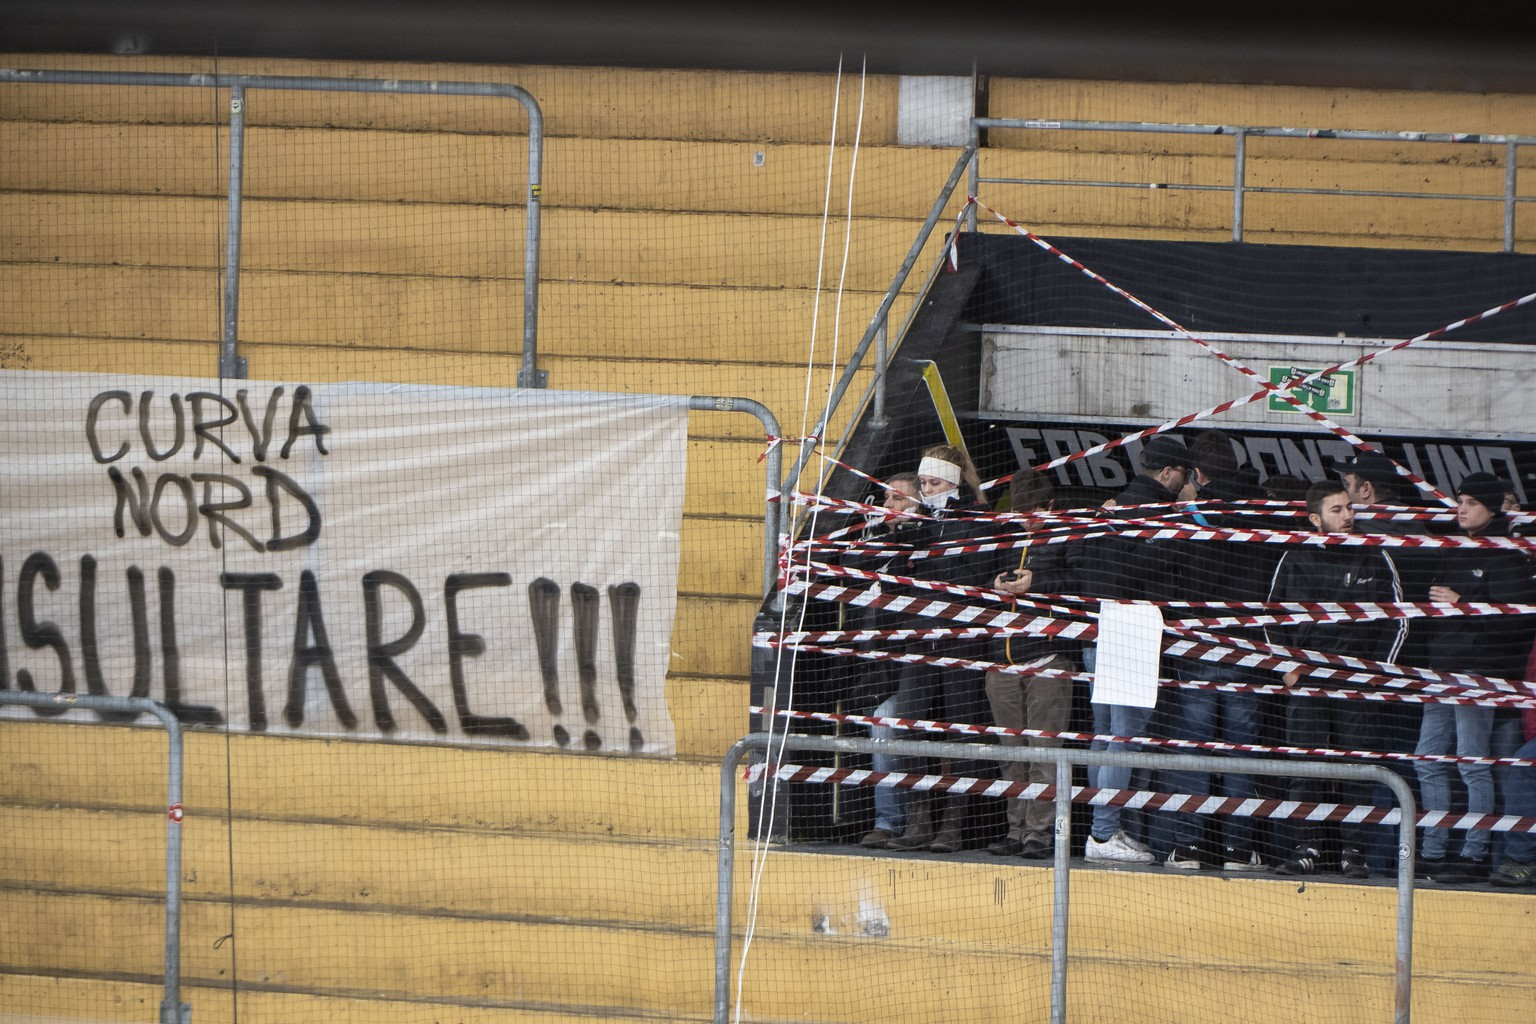 A banner is displayed on the stand of the Lugano fans, during the preliminary round game of National League A (NLA) Swiss Championship between HC Lugano and EHC Bienne at the ice stadium Corner Arena in Lugano, on Friday, December 20, 2019. (KEYSTONE/Ti-Press/Pablo Gianinazzi)